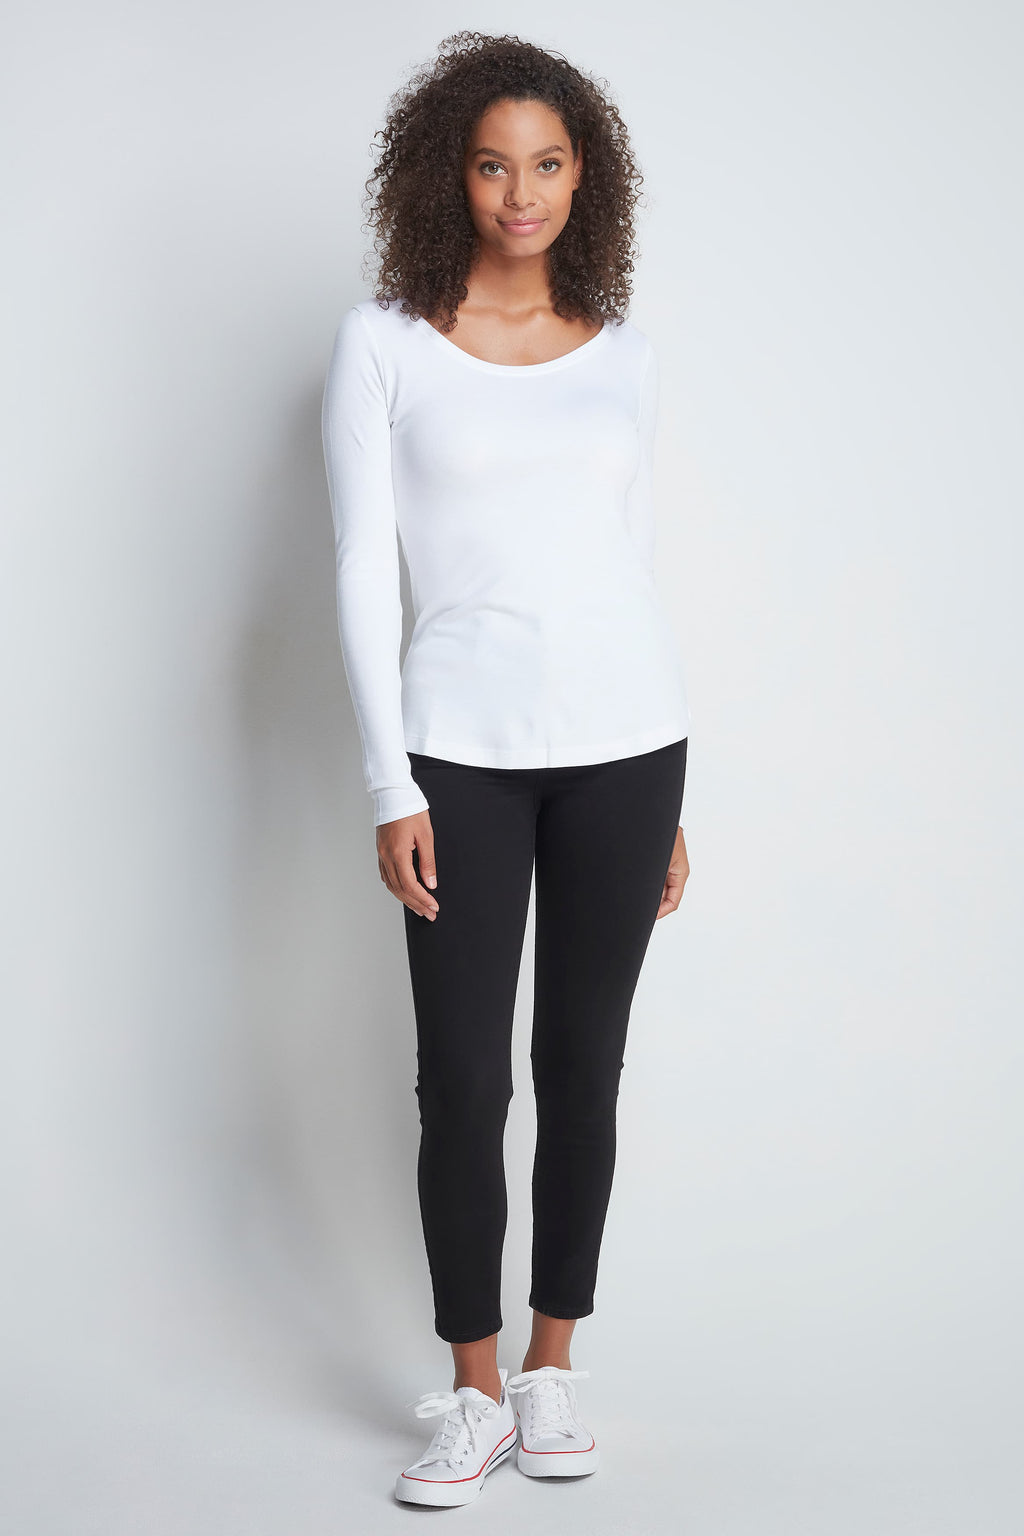 Long Sleeve White Scoop Neck T-shirt - High Quality Flattering Scoop Neck - Classic Mid-Weight Long Sleeve T-Shirt